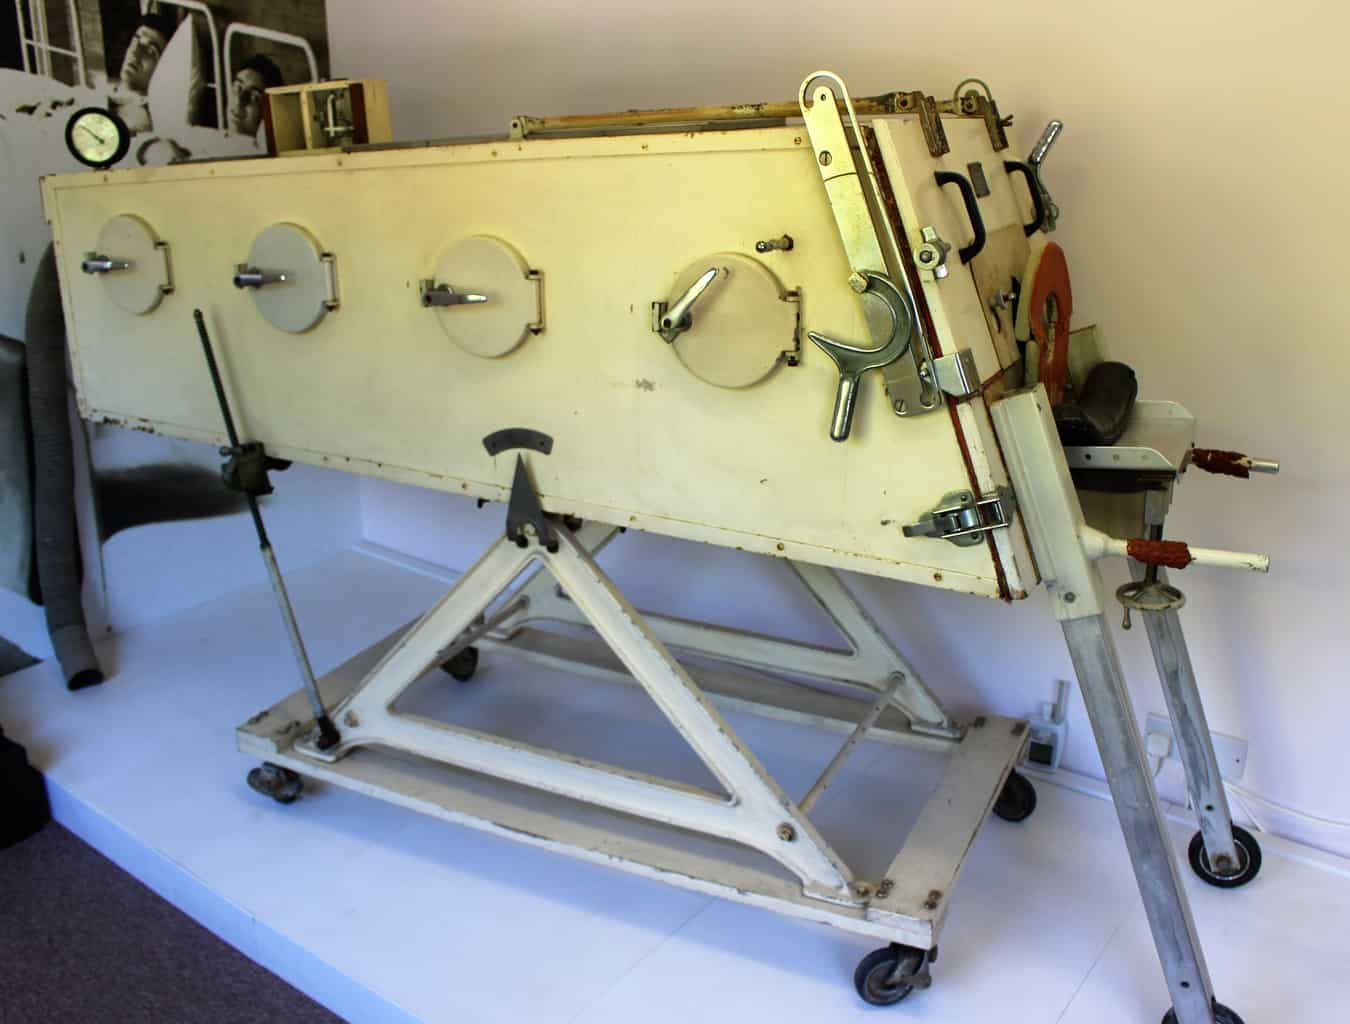 An iron lung manufactured by William Morris in Nuffield Place.